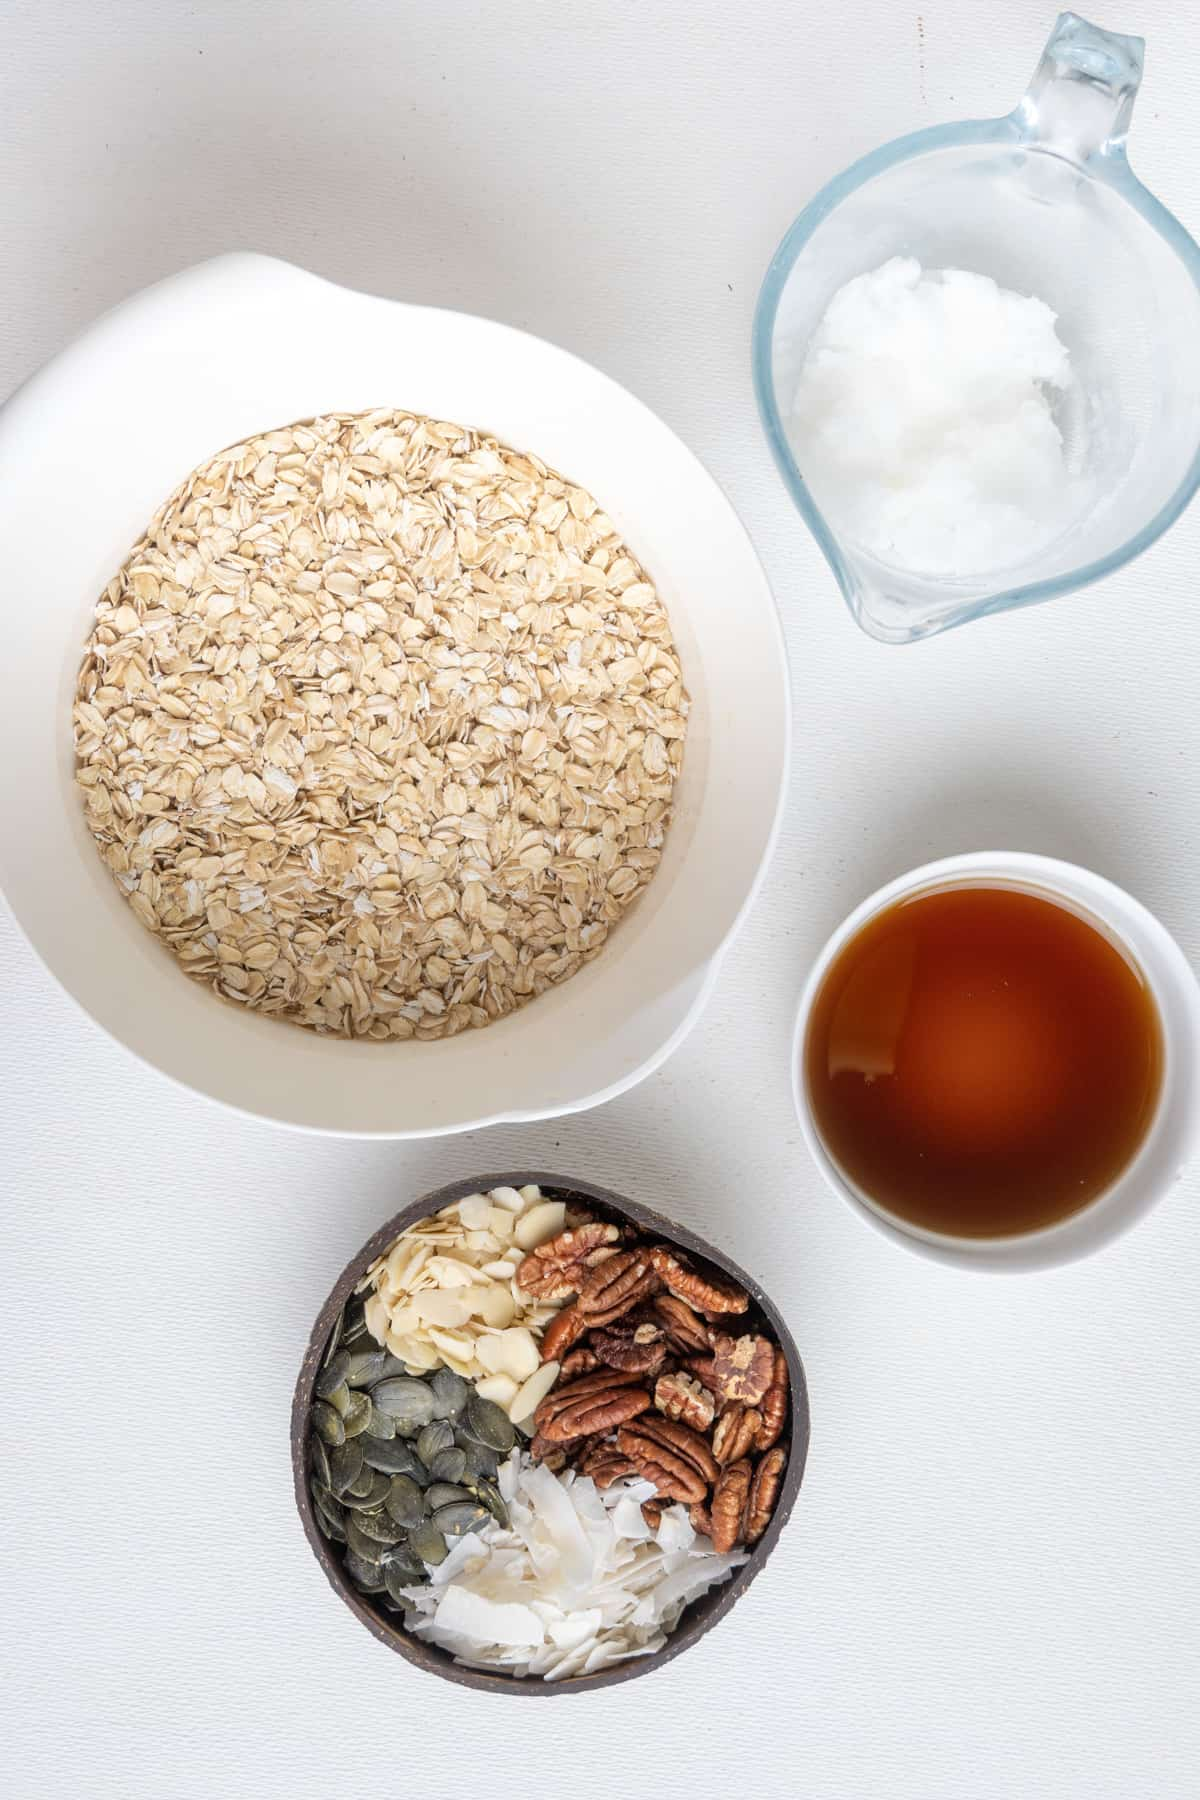 The ingredients for vegan granola: Rolled oats, nuts, mixed seeds and nuts, coconut oil and maple syrup.